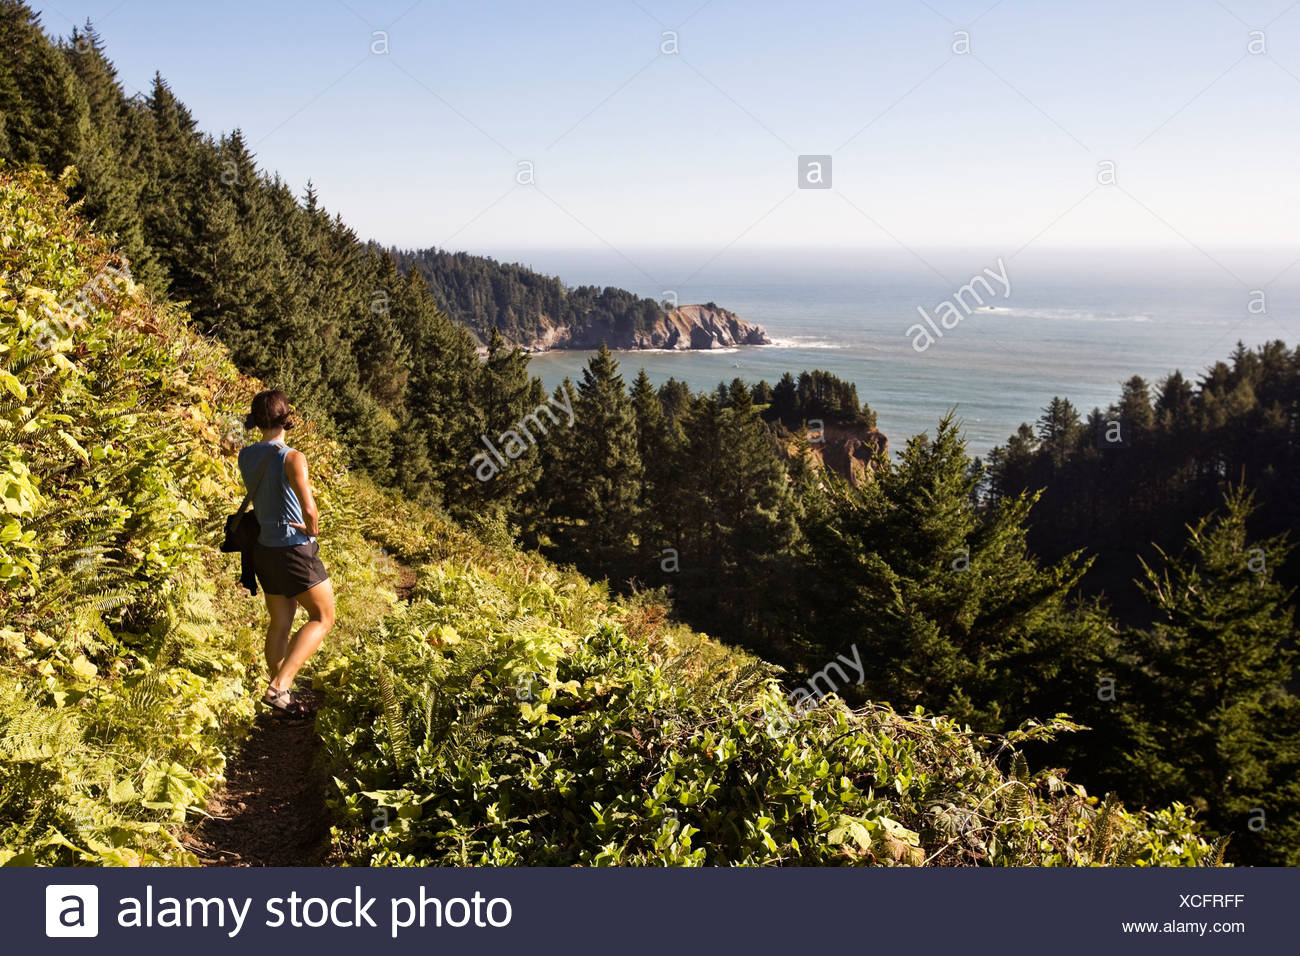 A woman wearing summer clothes hikes Neahkahnie Mountain, a coastal trail in northwest Oregon, and pauses to look out over the o - Stock Image